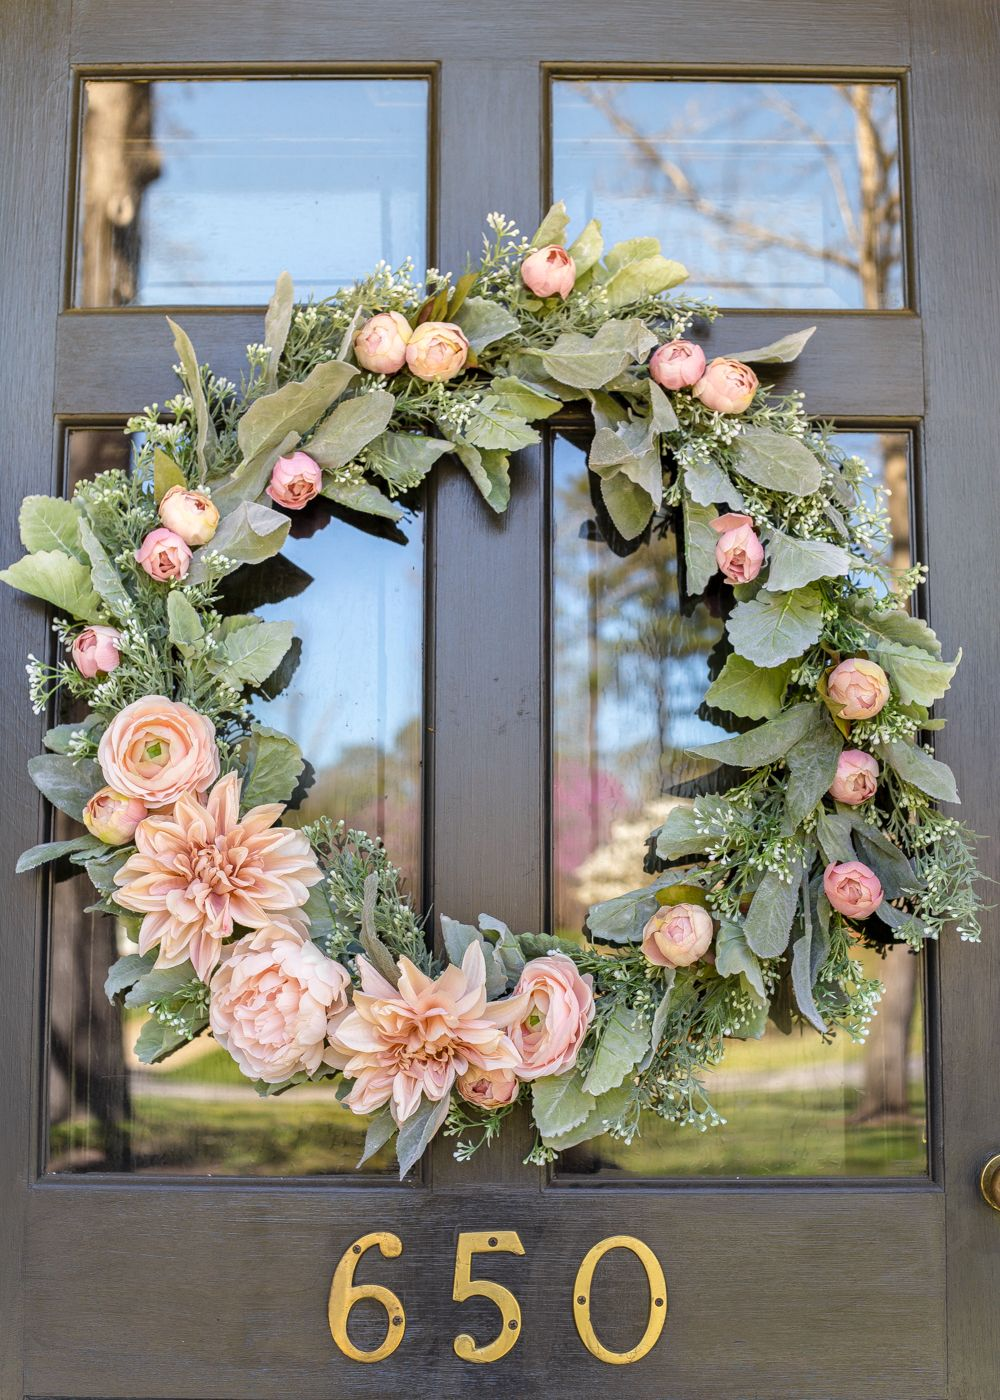 30 Diy Spring Wreaths Ideas For Spring Front Door Wreath Crafts